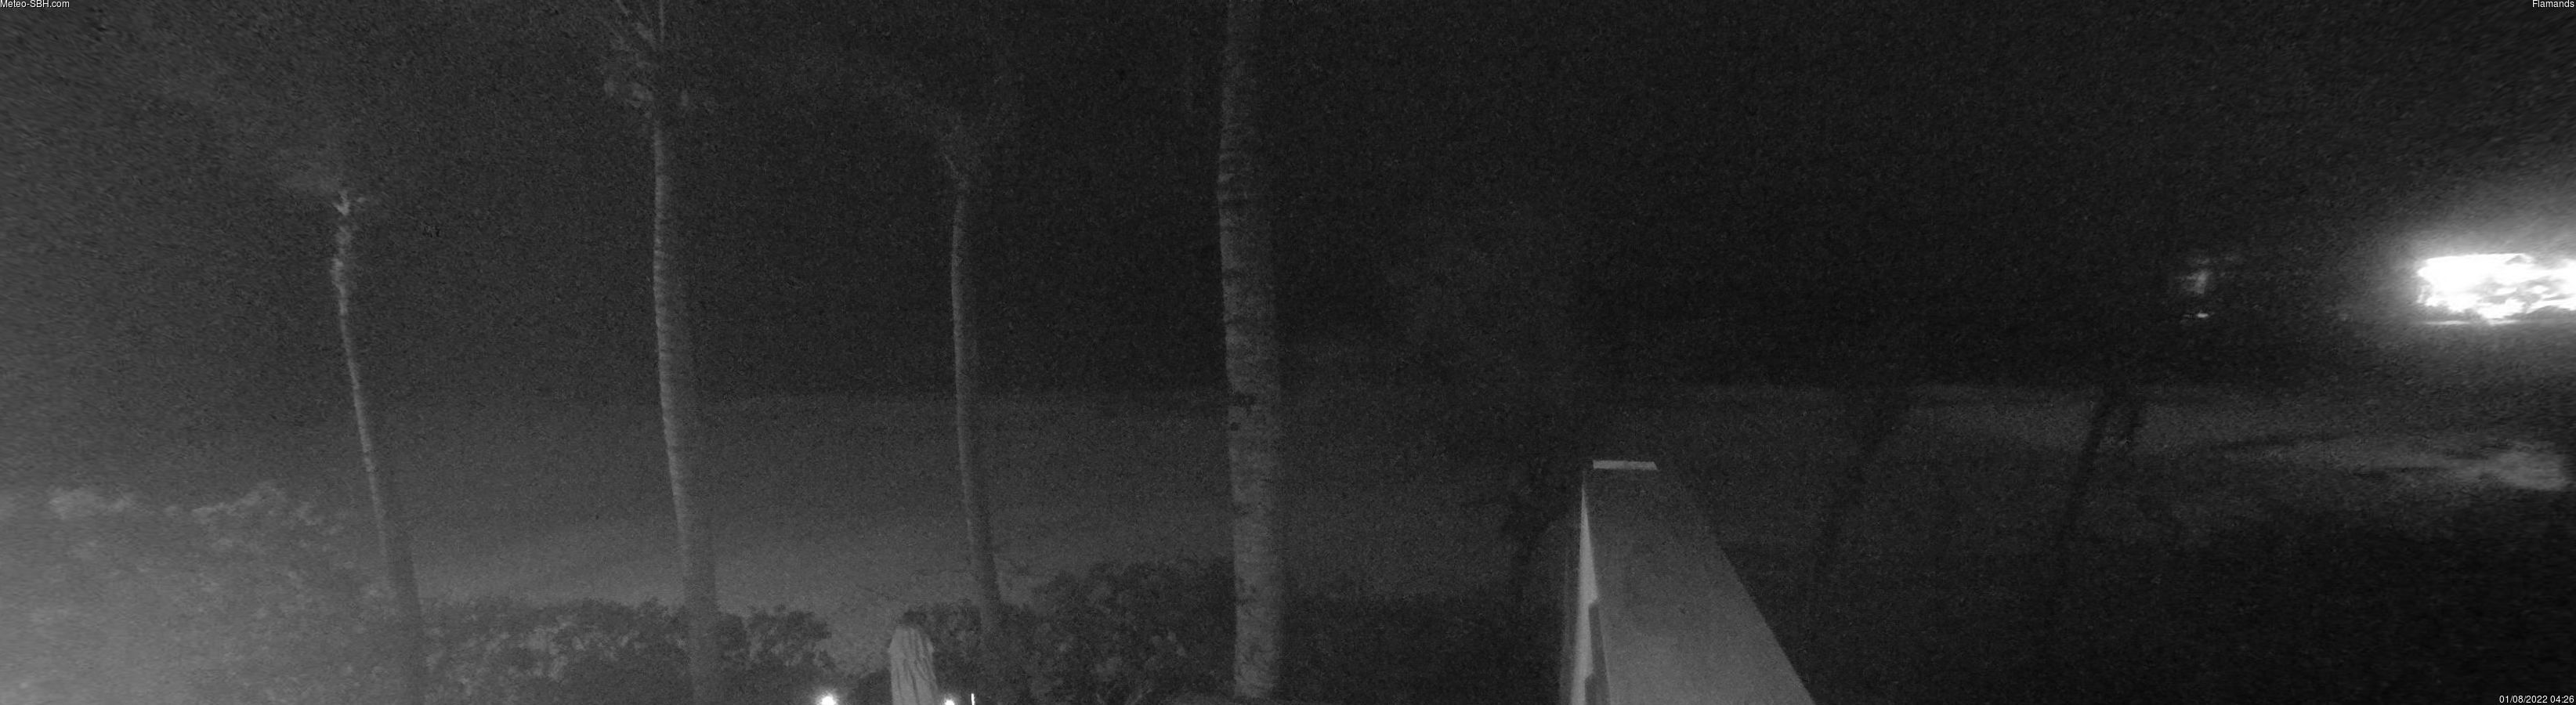 St Barth - Meteo-sbh.com - Flamands - Webcam